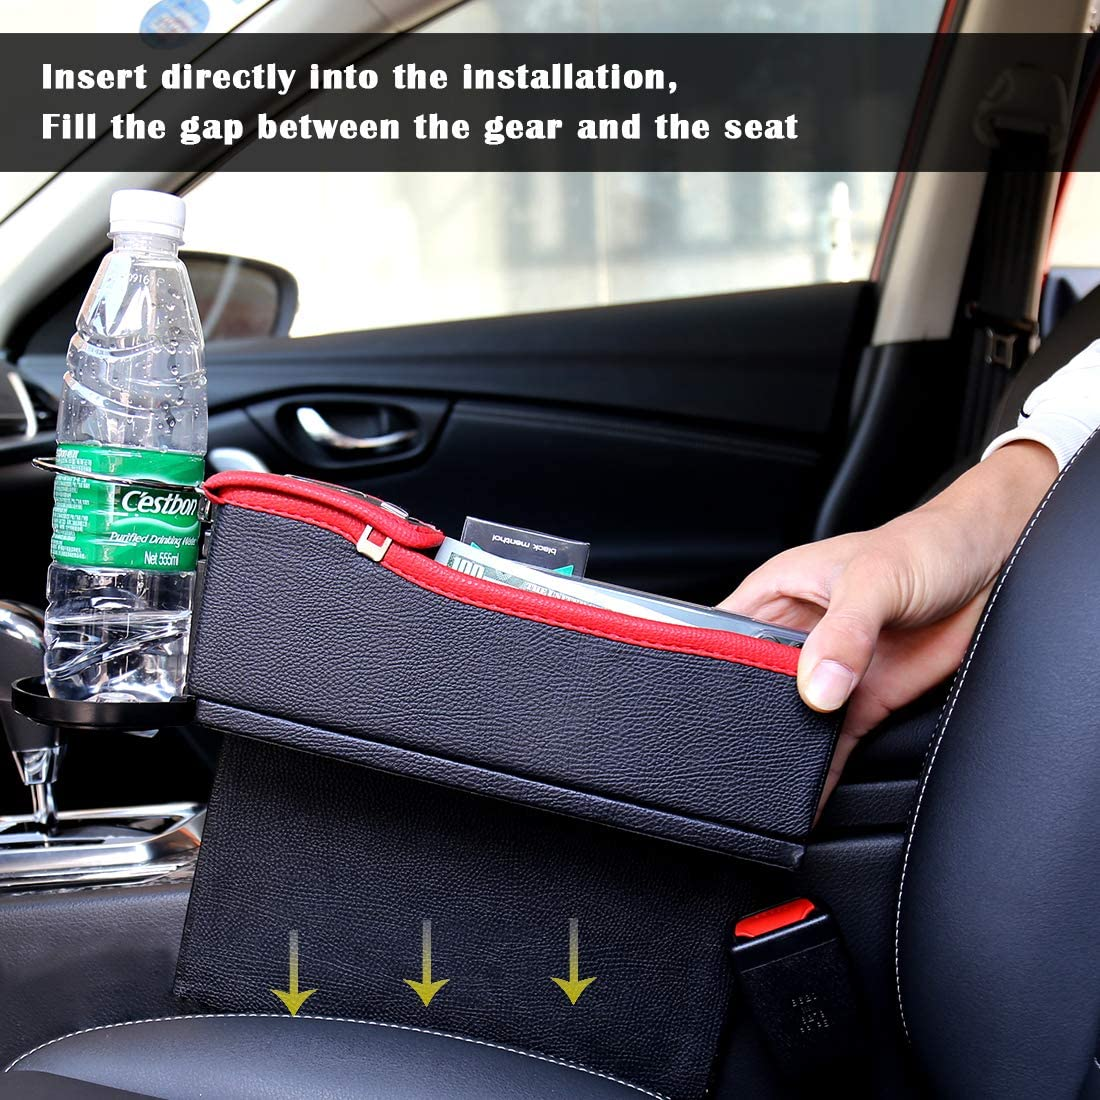 Car Interior Accessories Passenger Seat-Right Side, Black Maodaner Universal Car Seat Gap Filler Premium PU Leather Side Pocket Organizer Seat Crevice Storage Box with Cup Holder for Smartphone Coin Wallet Key